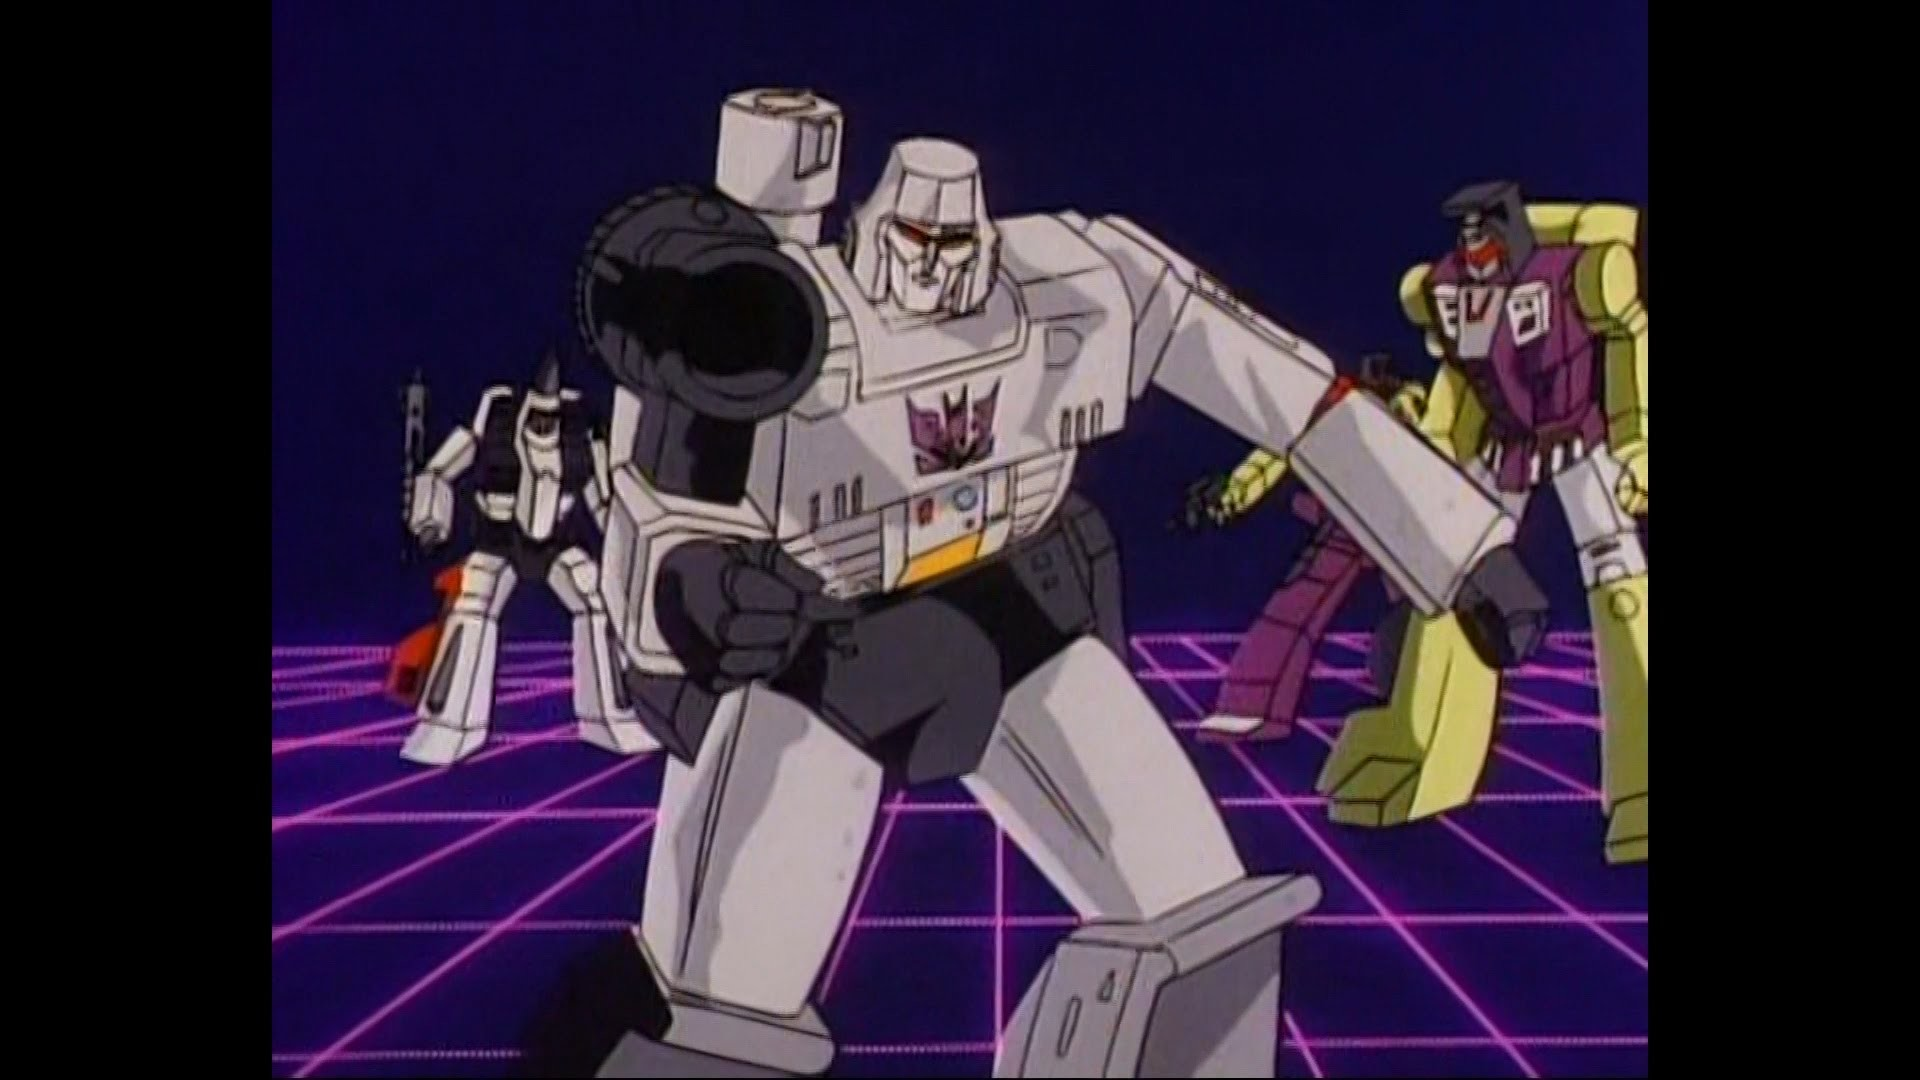 Awesome 80's Cartoon and TV Show Intros Transformers season 2 – YouTube